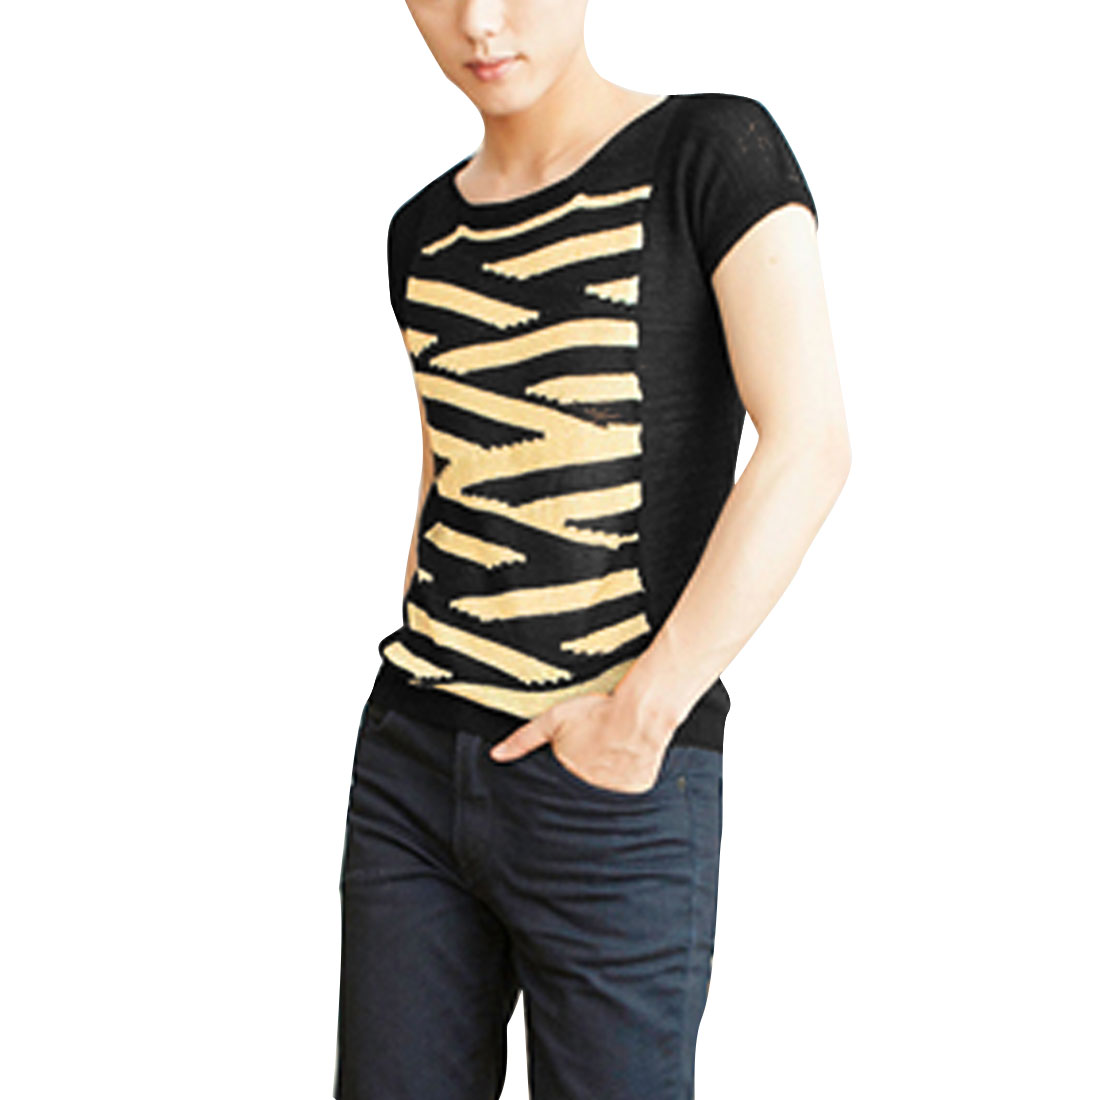 Man New Fashion Gold Tone Black Stripes Design Summer Knitted Shirt M